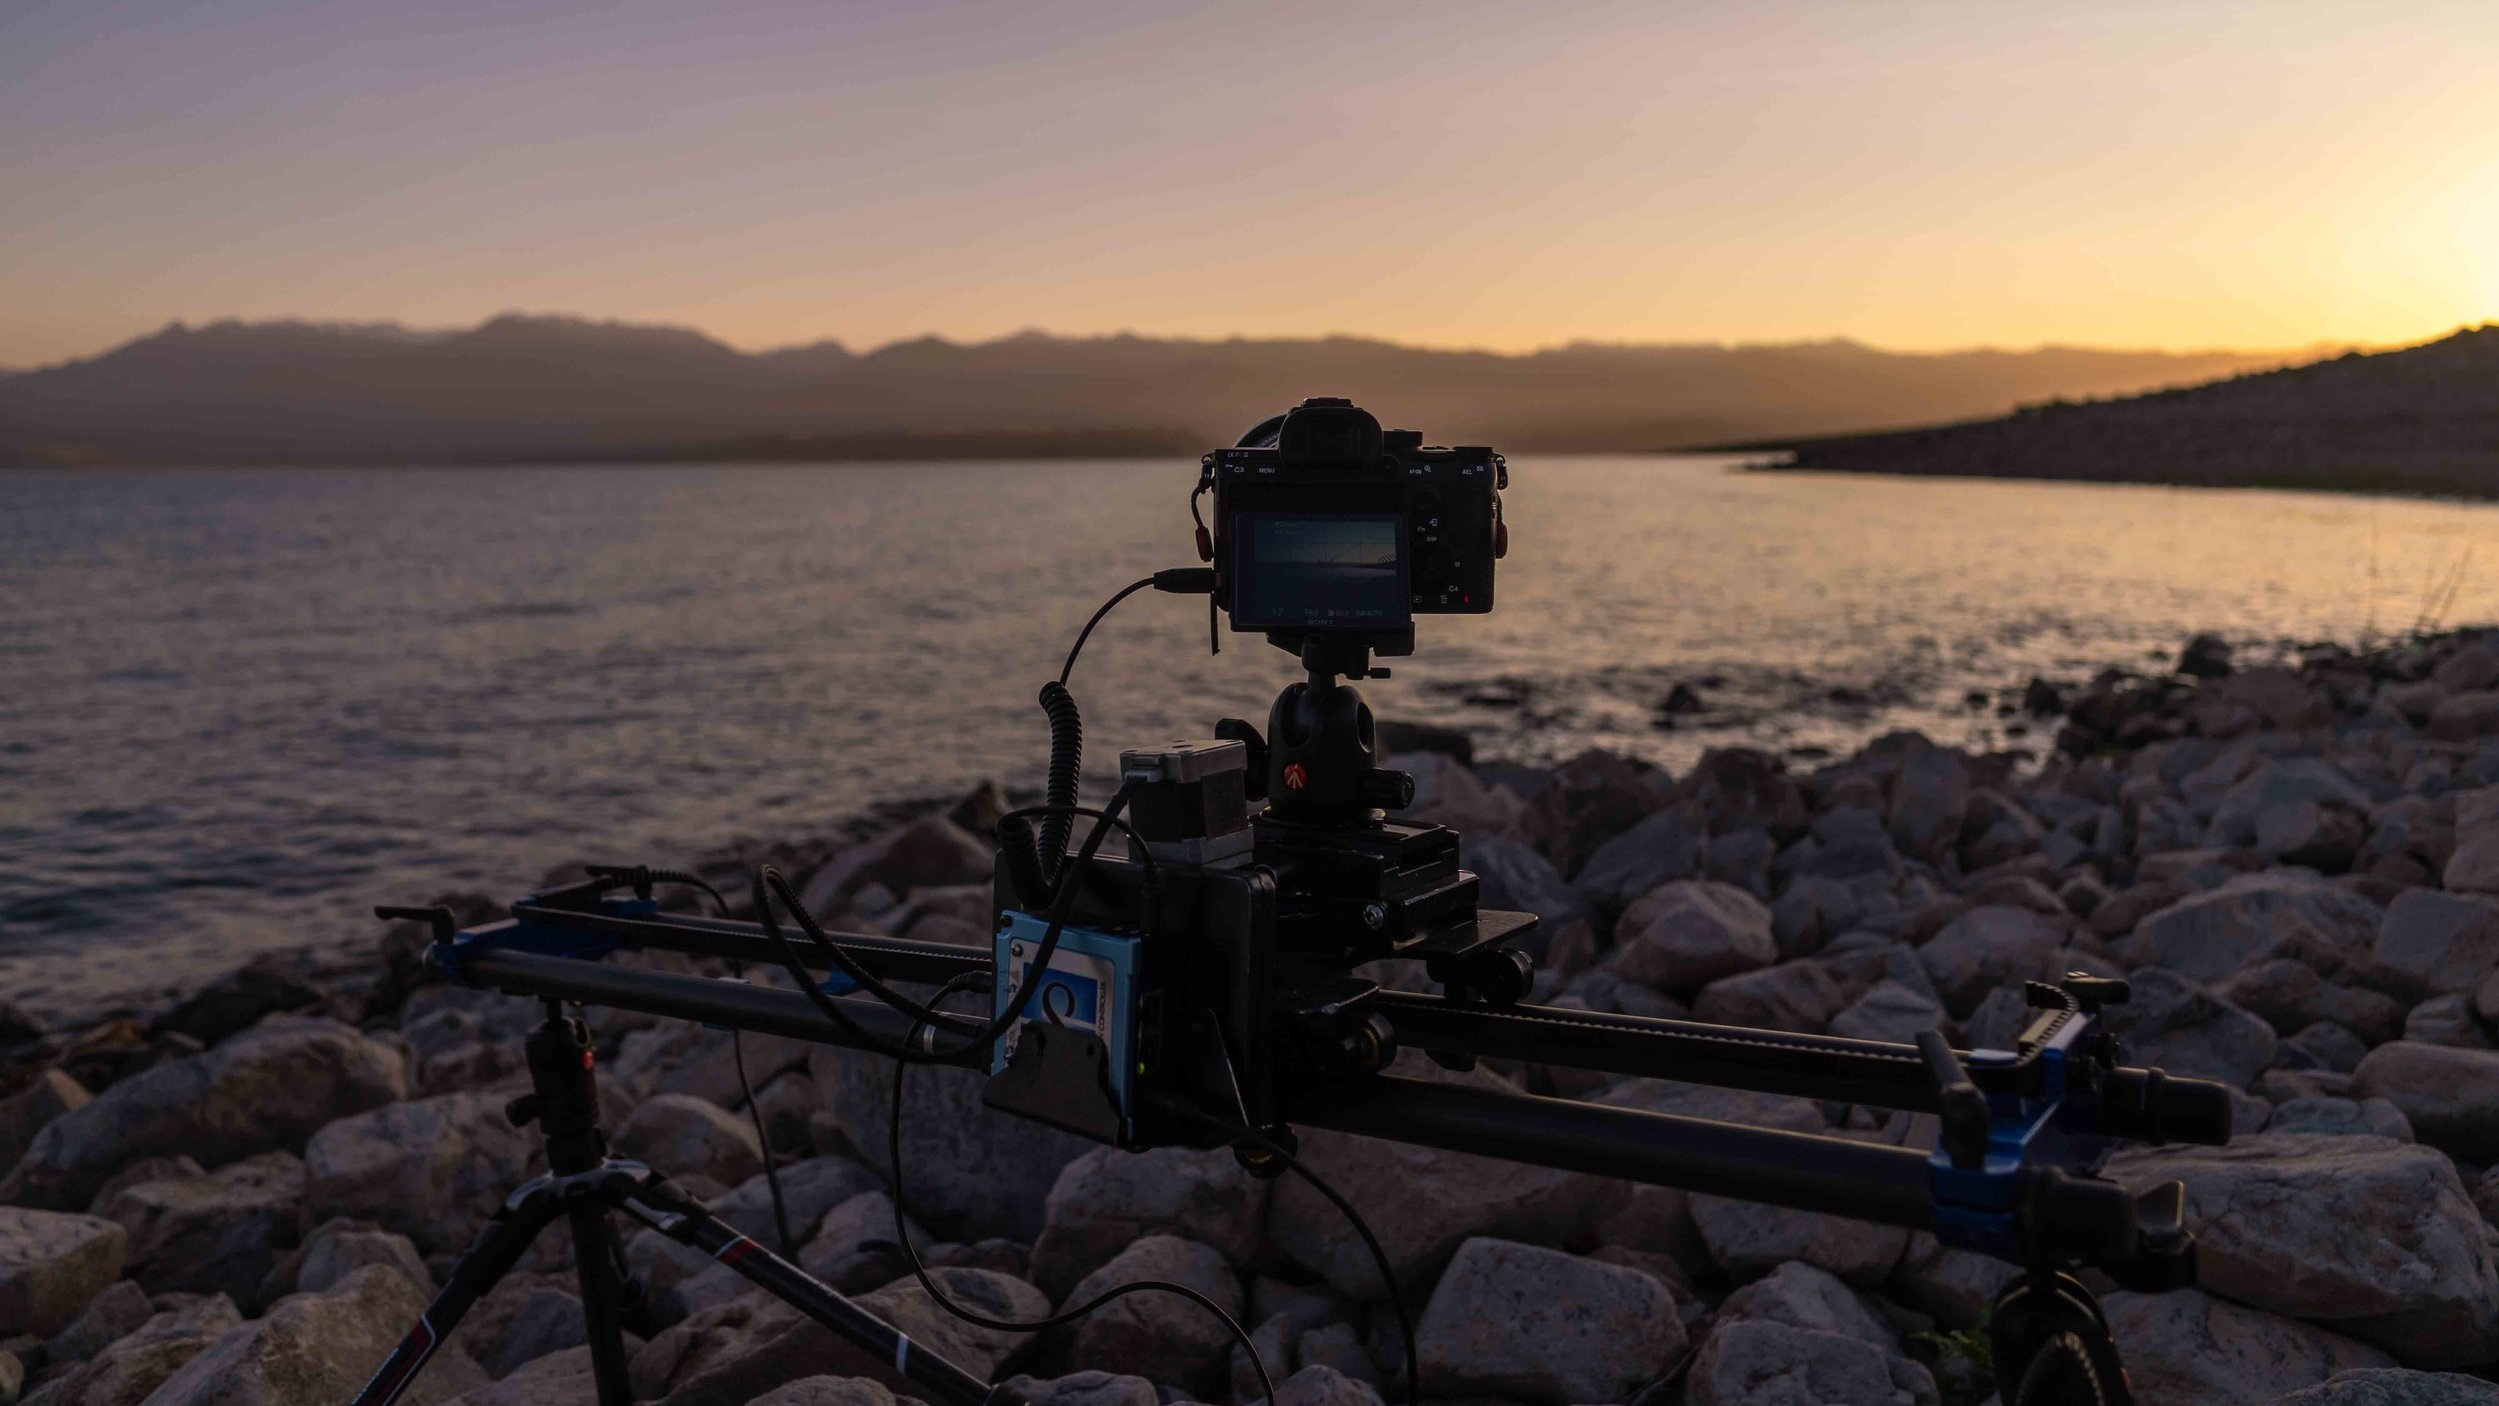 Dynamic Perception Stage One Shooting a Time lapse of the Sunrise at Toktogul